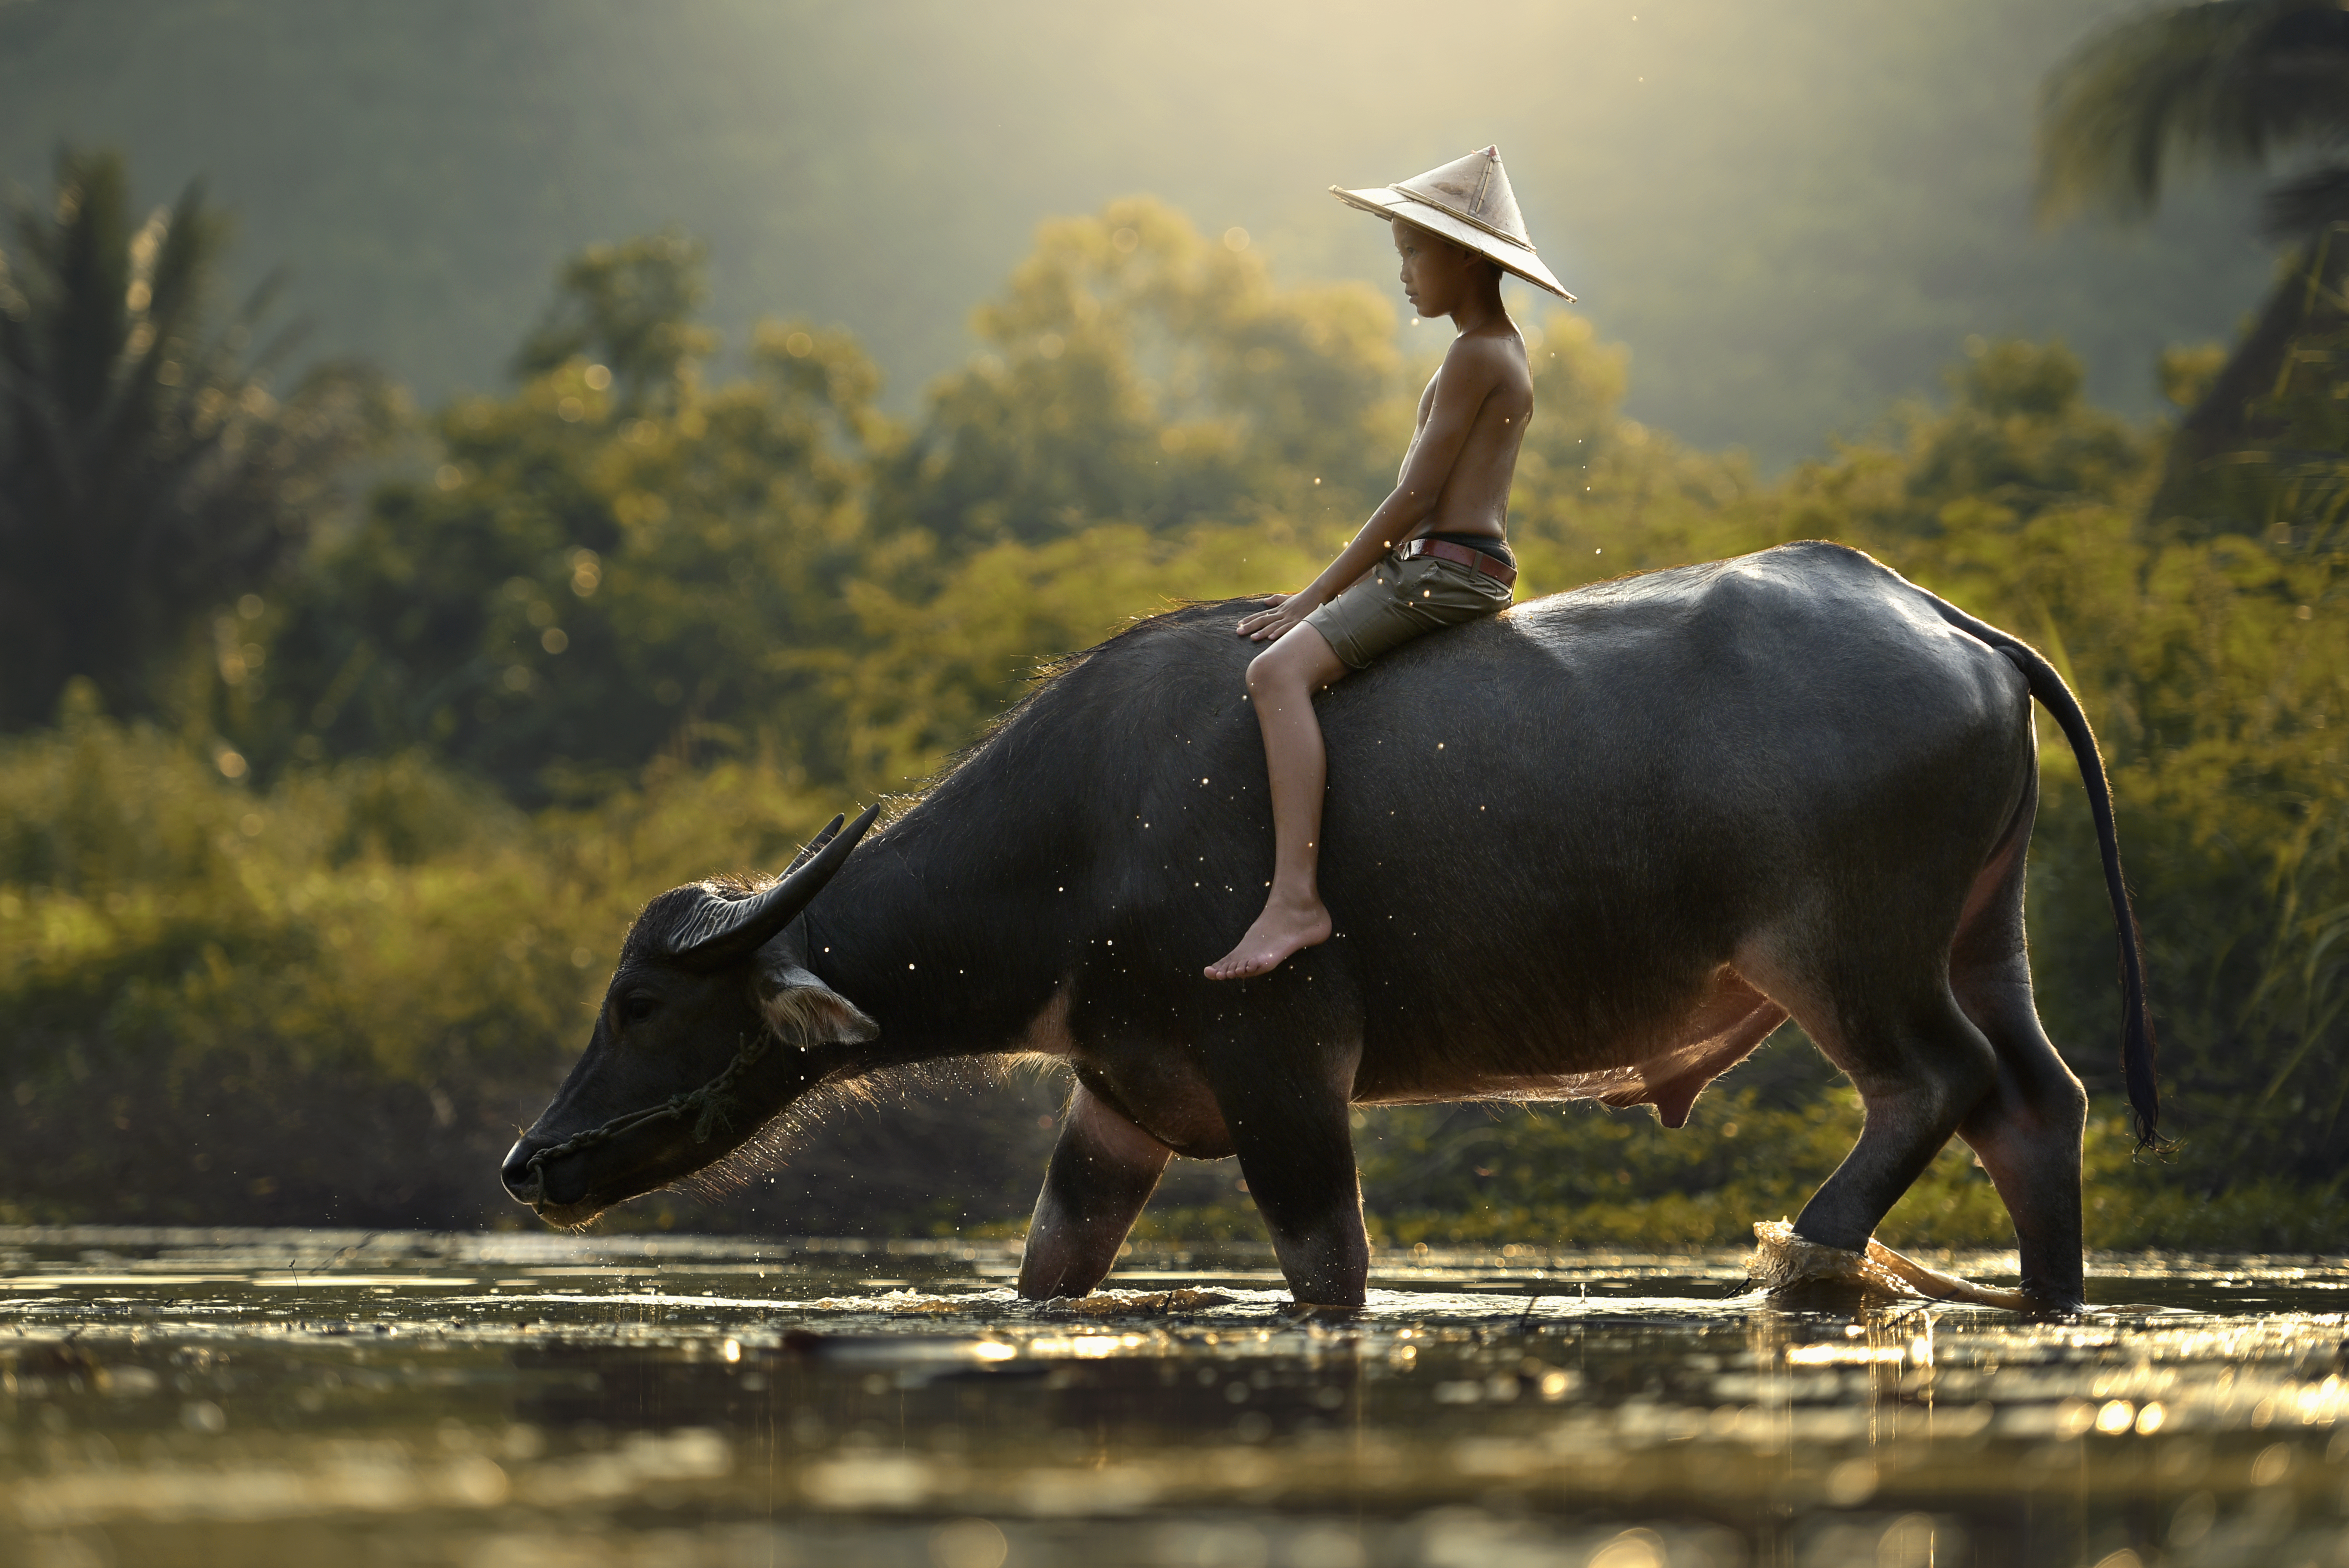 China's Growing Control of Cambodia: 5 Geopolitical Effects You Need to Know